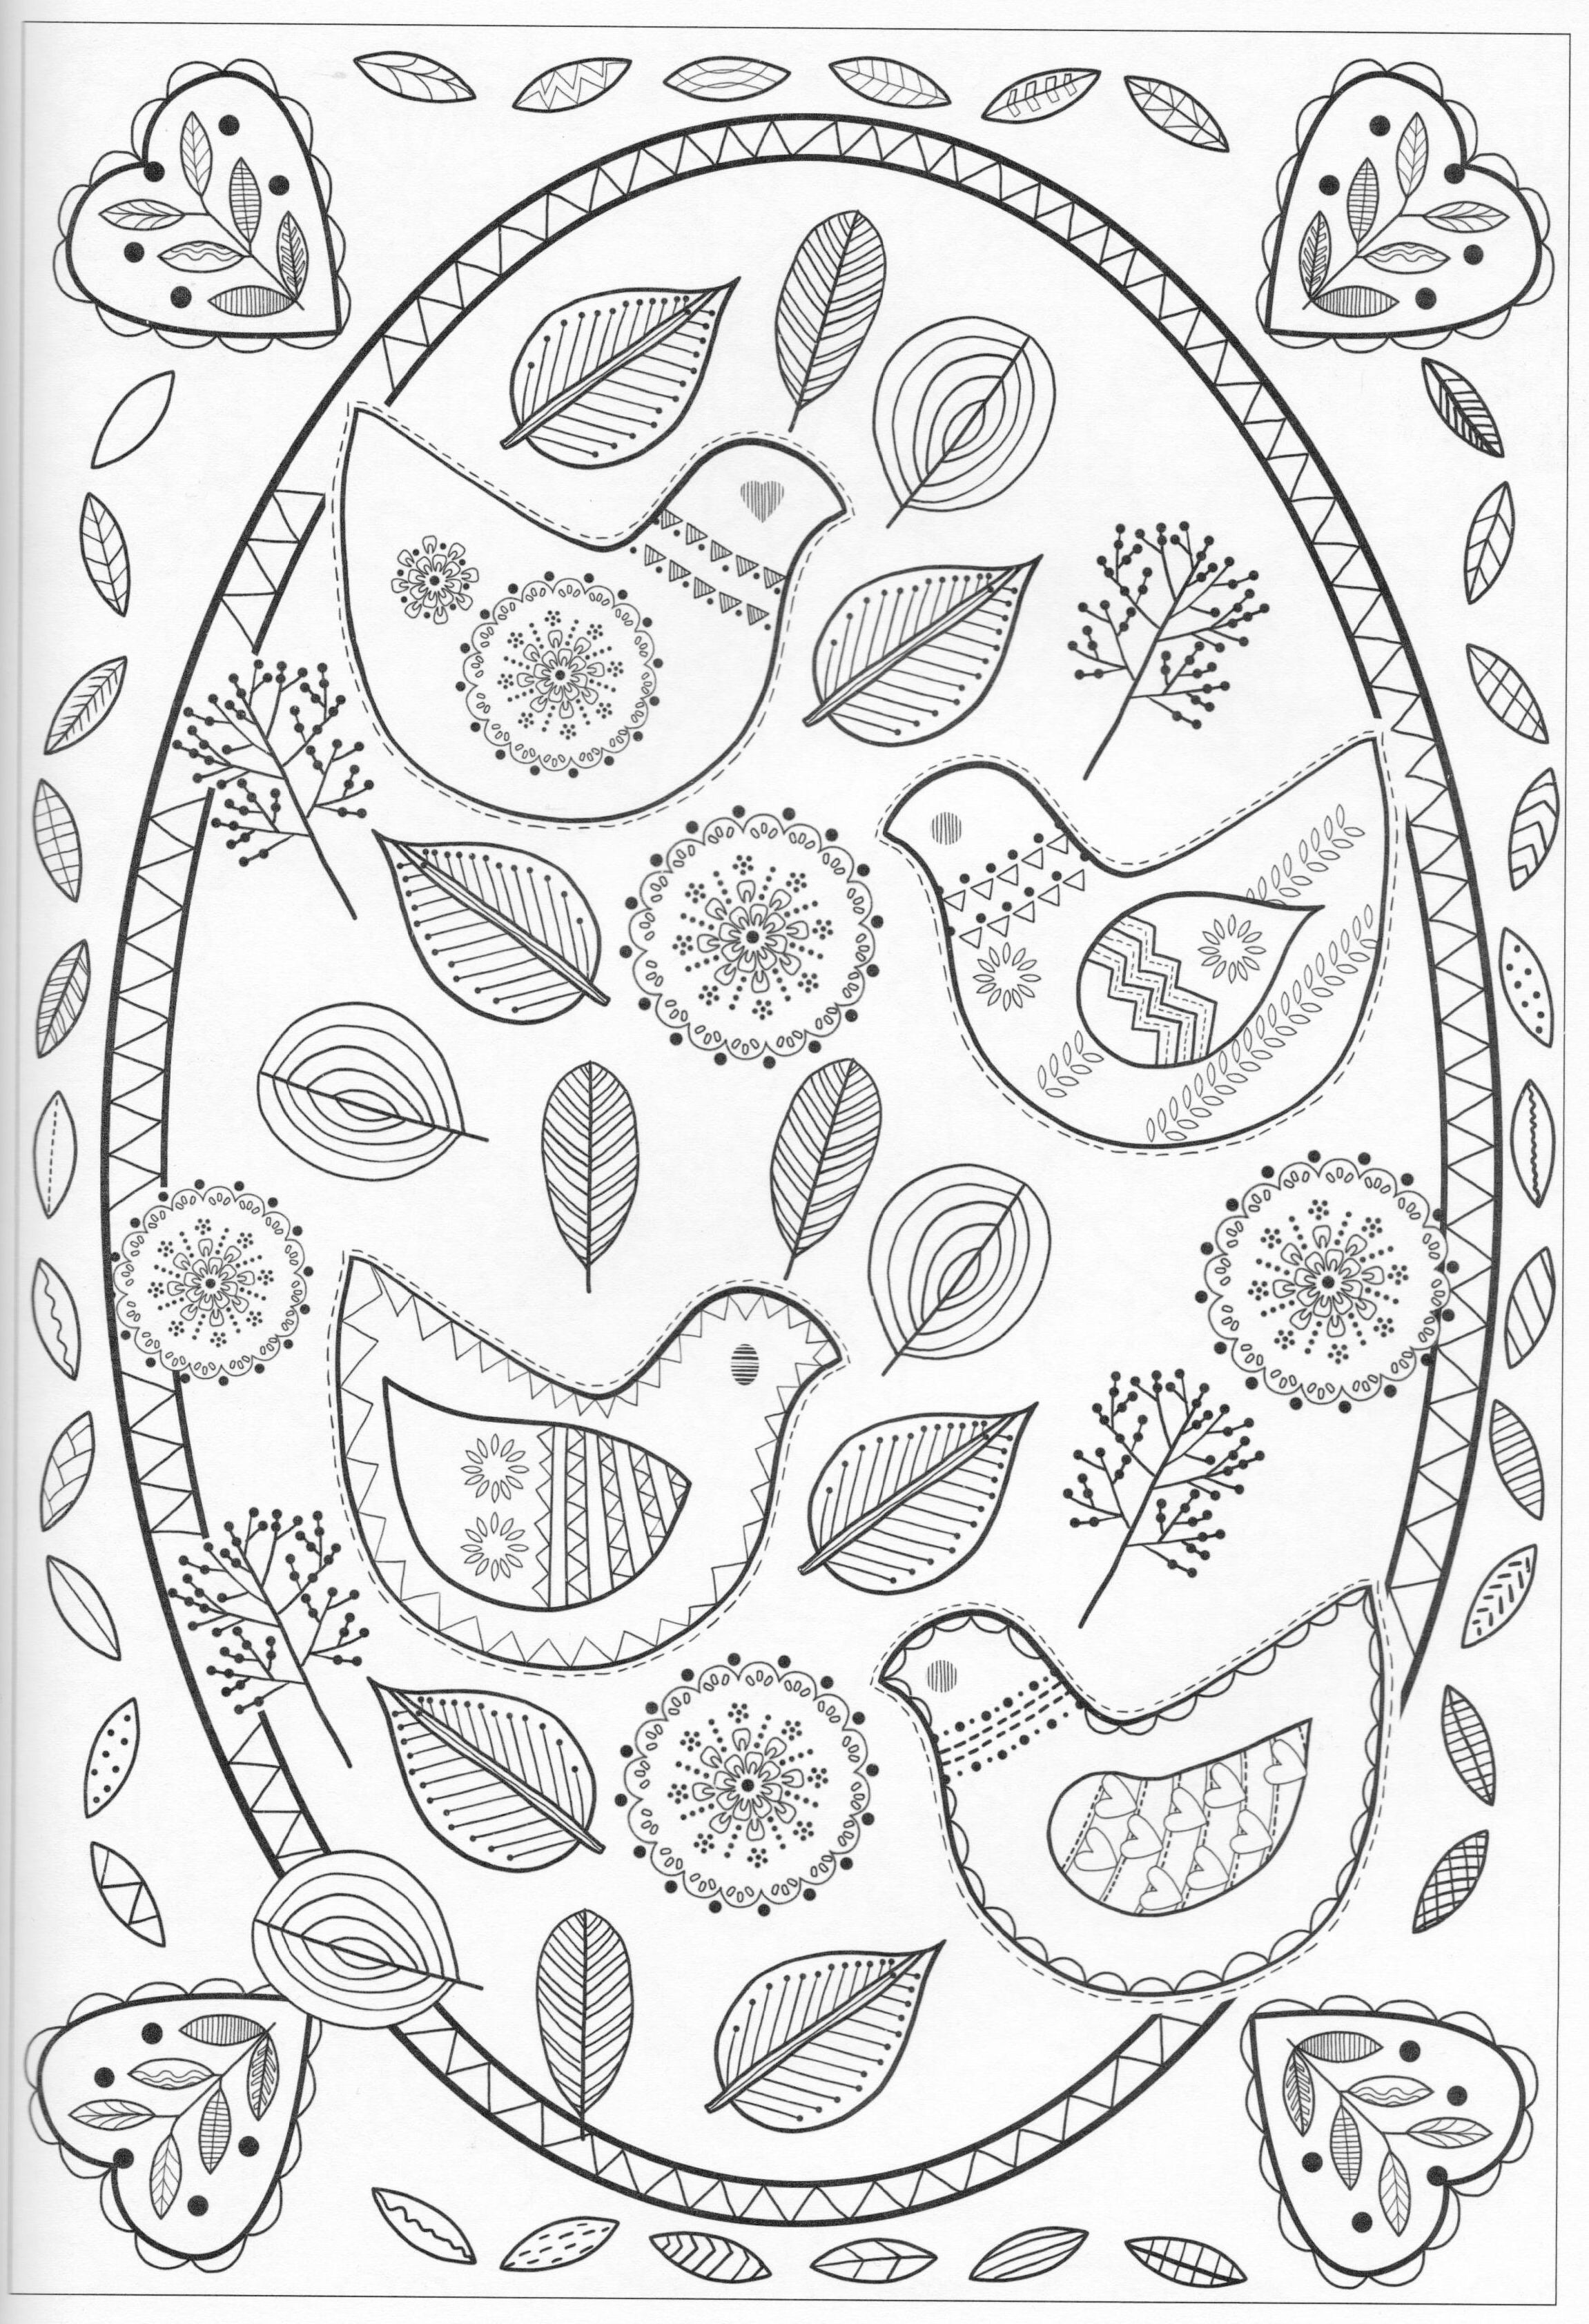 24 Elegant Picture Of Coloring Pages You Can Color On The Computer Davemelillo Com Mandala Coloring Pages Bird Coloring Pages Coloring Pages